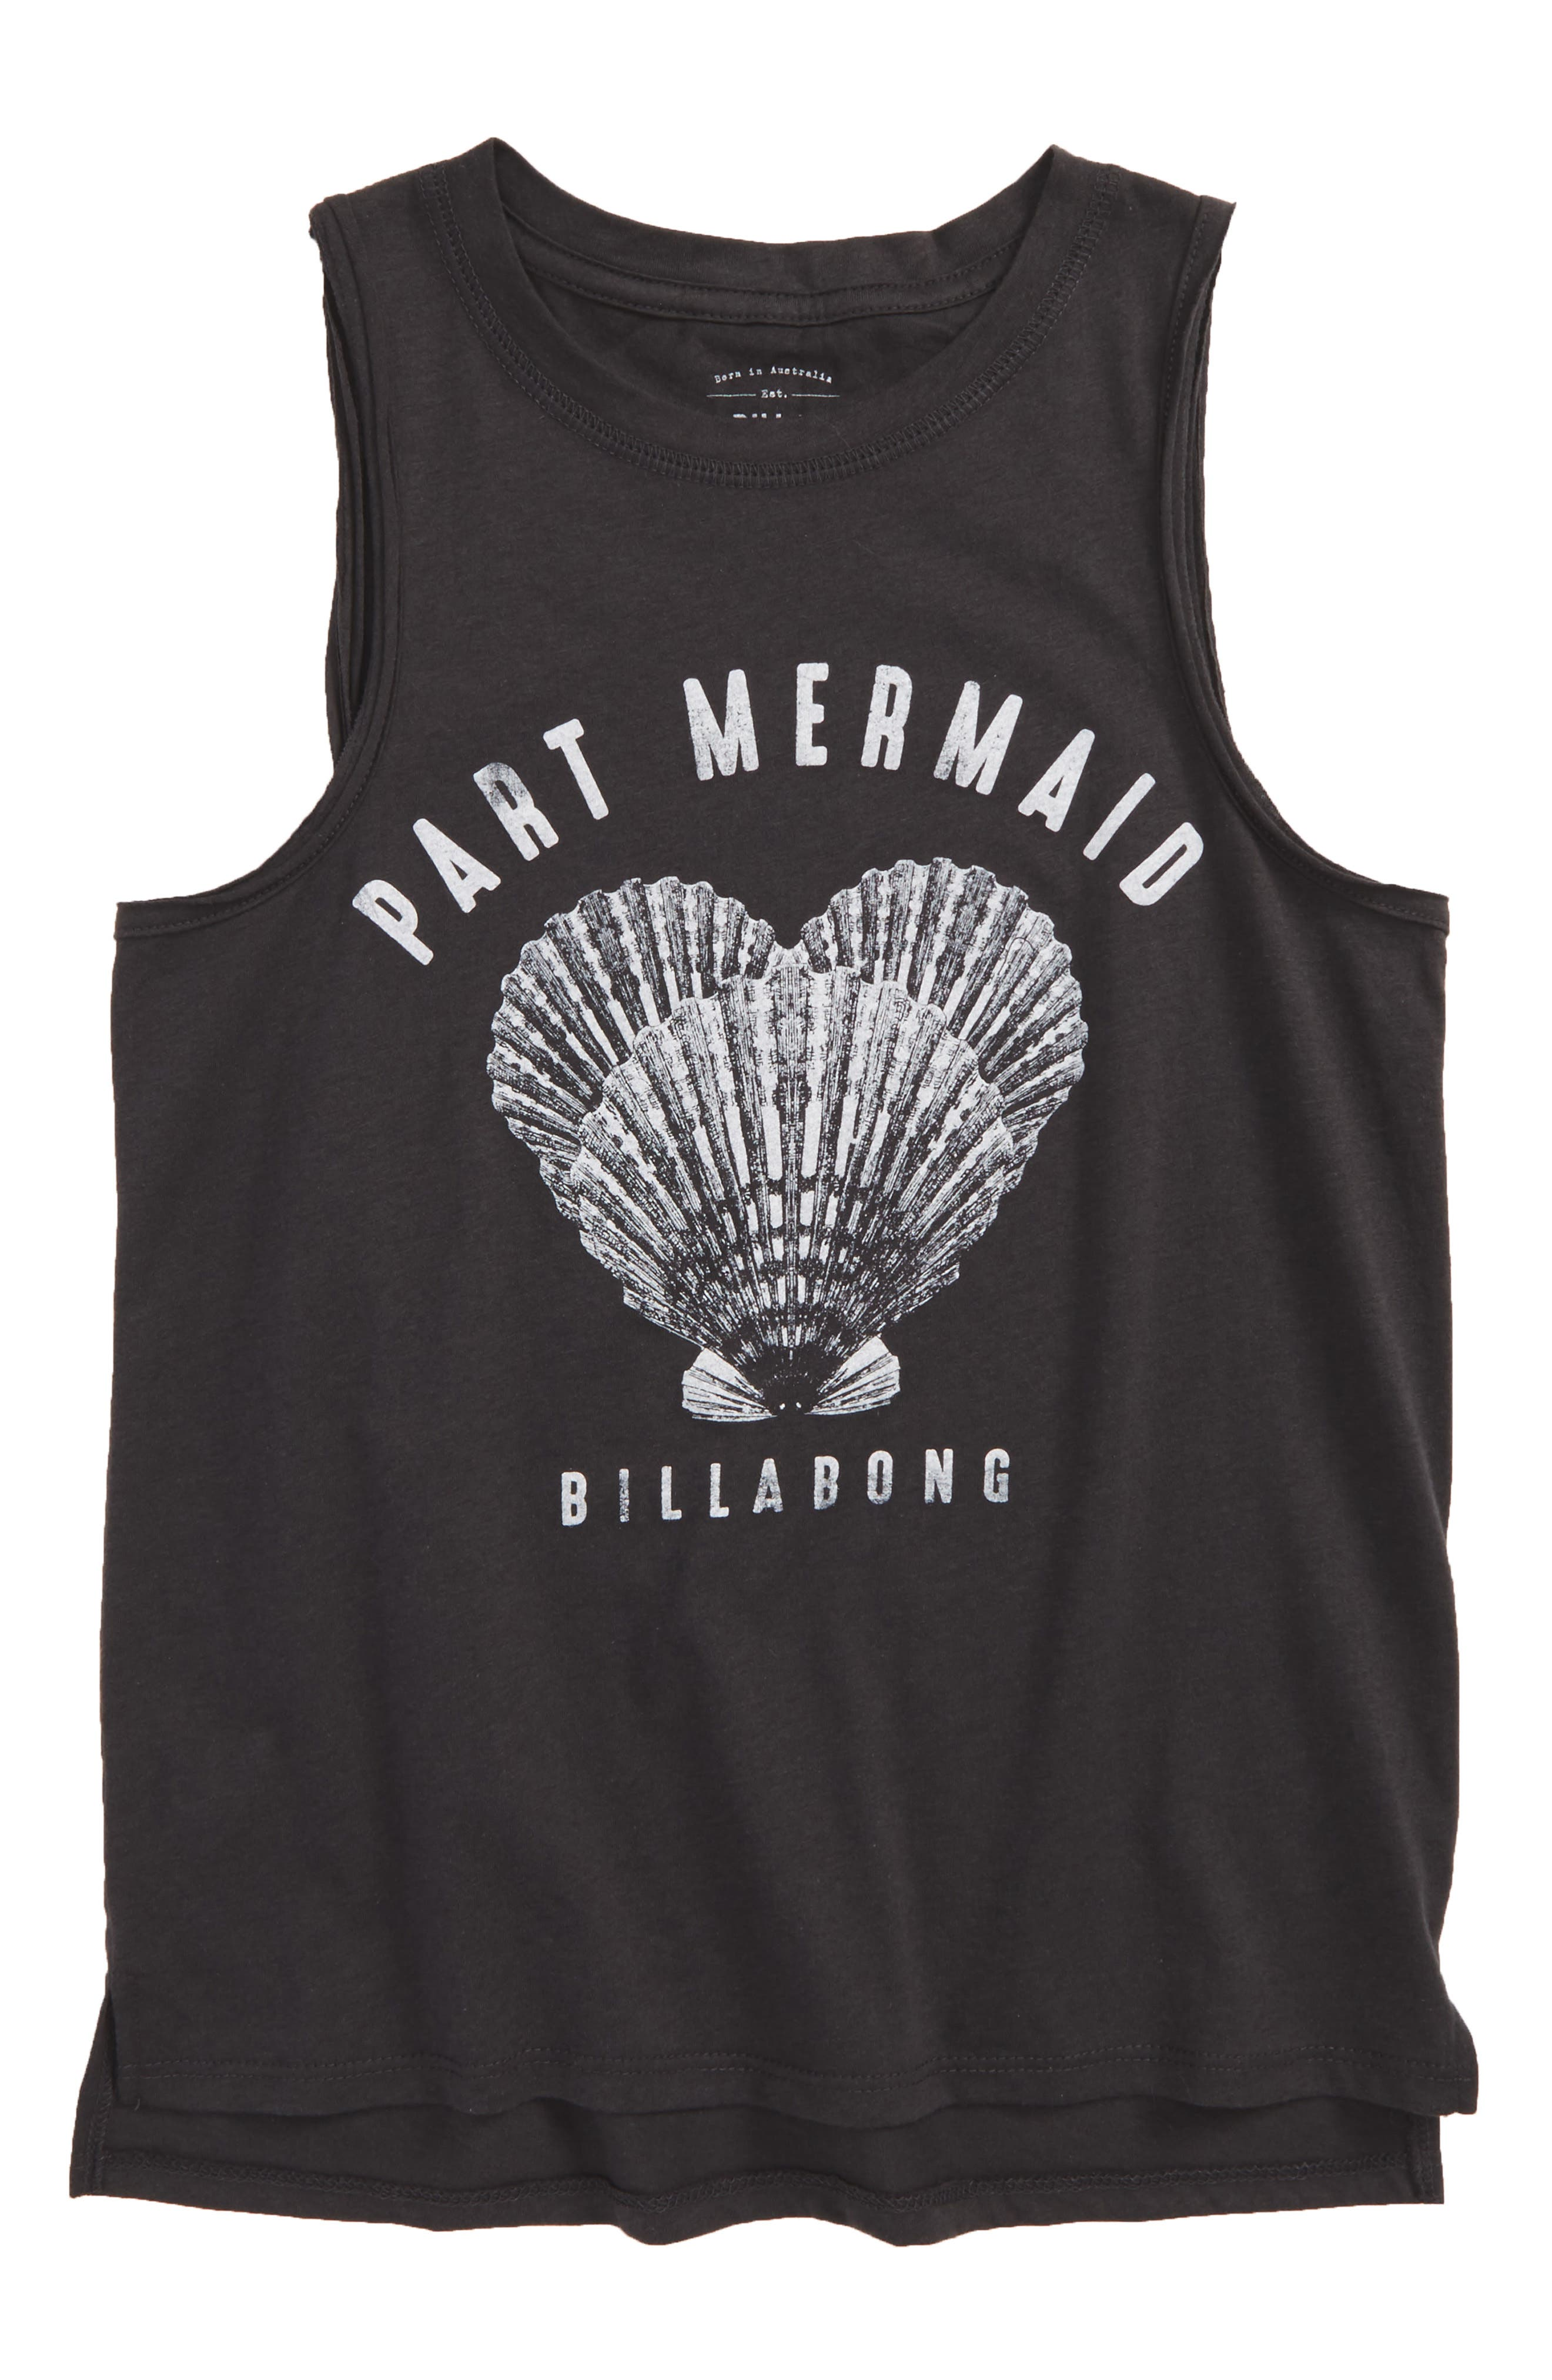 Main Image - Billabong Part Mermaid Graphic Tank (Little Girls & Big Girls)